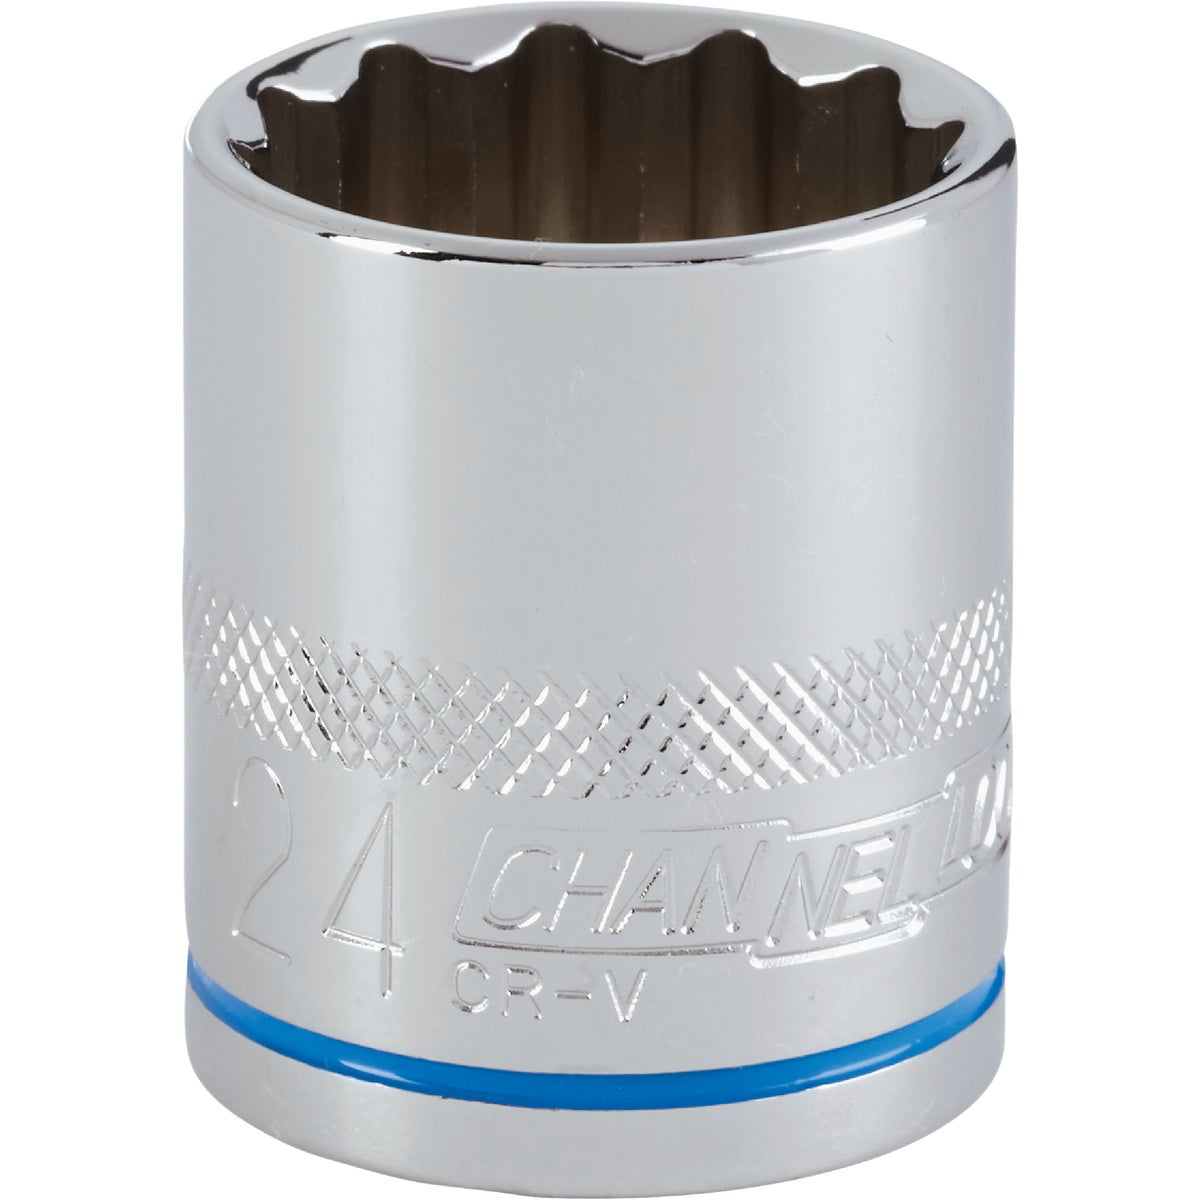 24MM 1/2 DRIVE SOCKET - 397741 by Danaher Tool Ltd